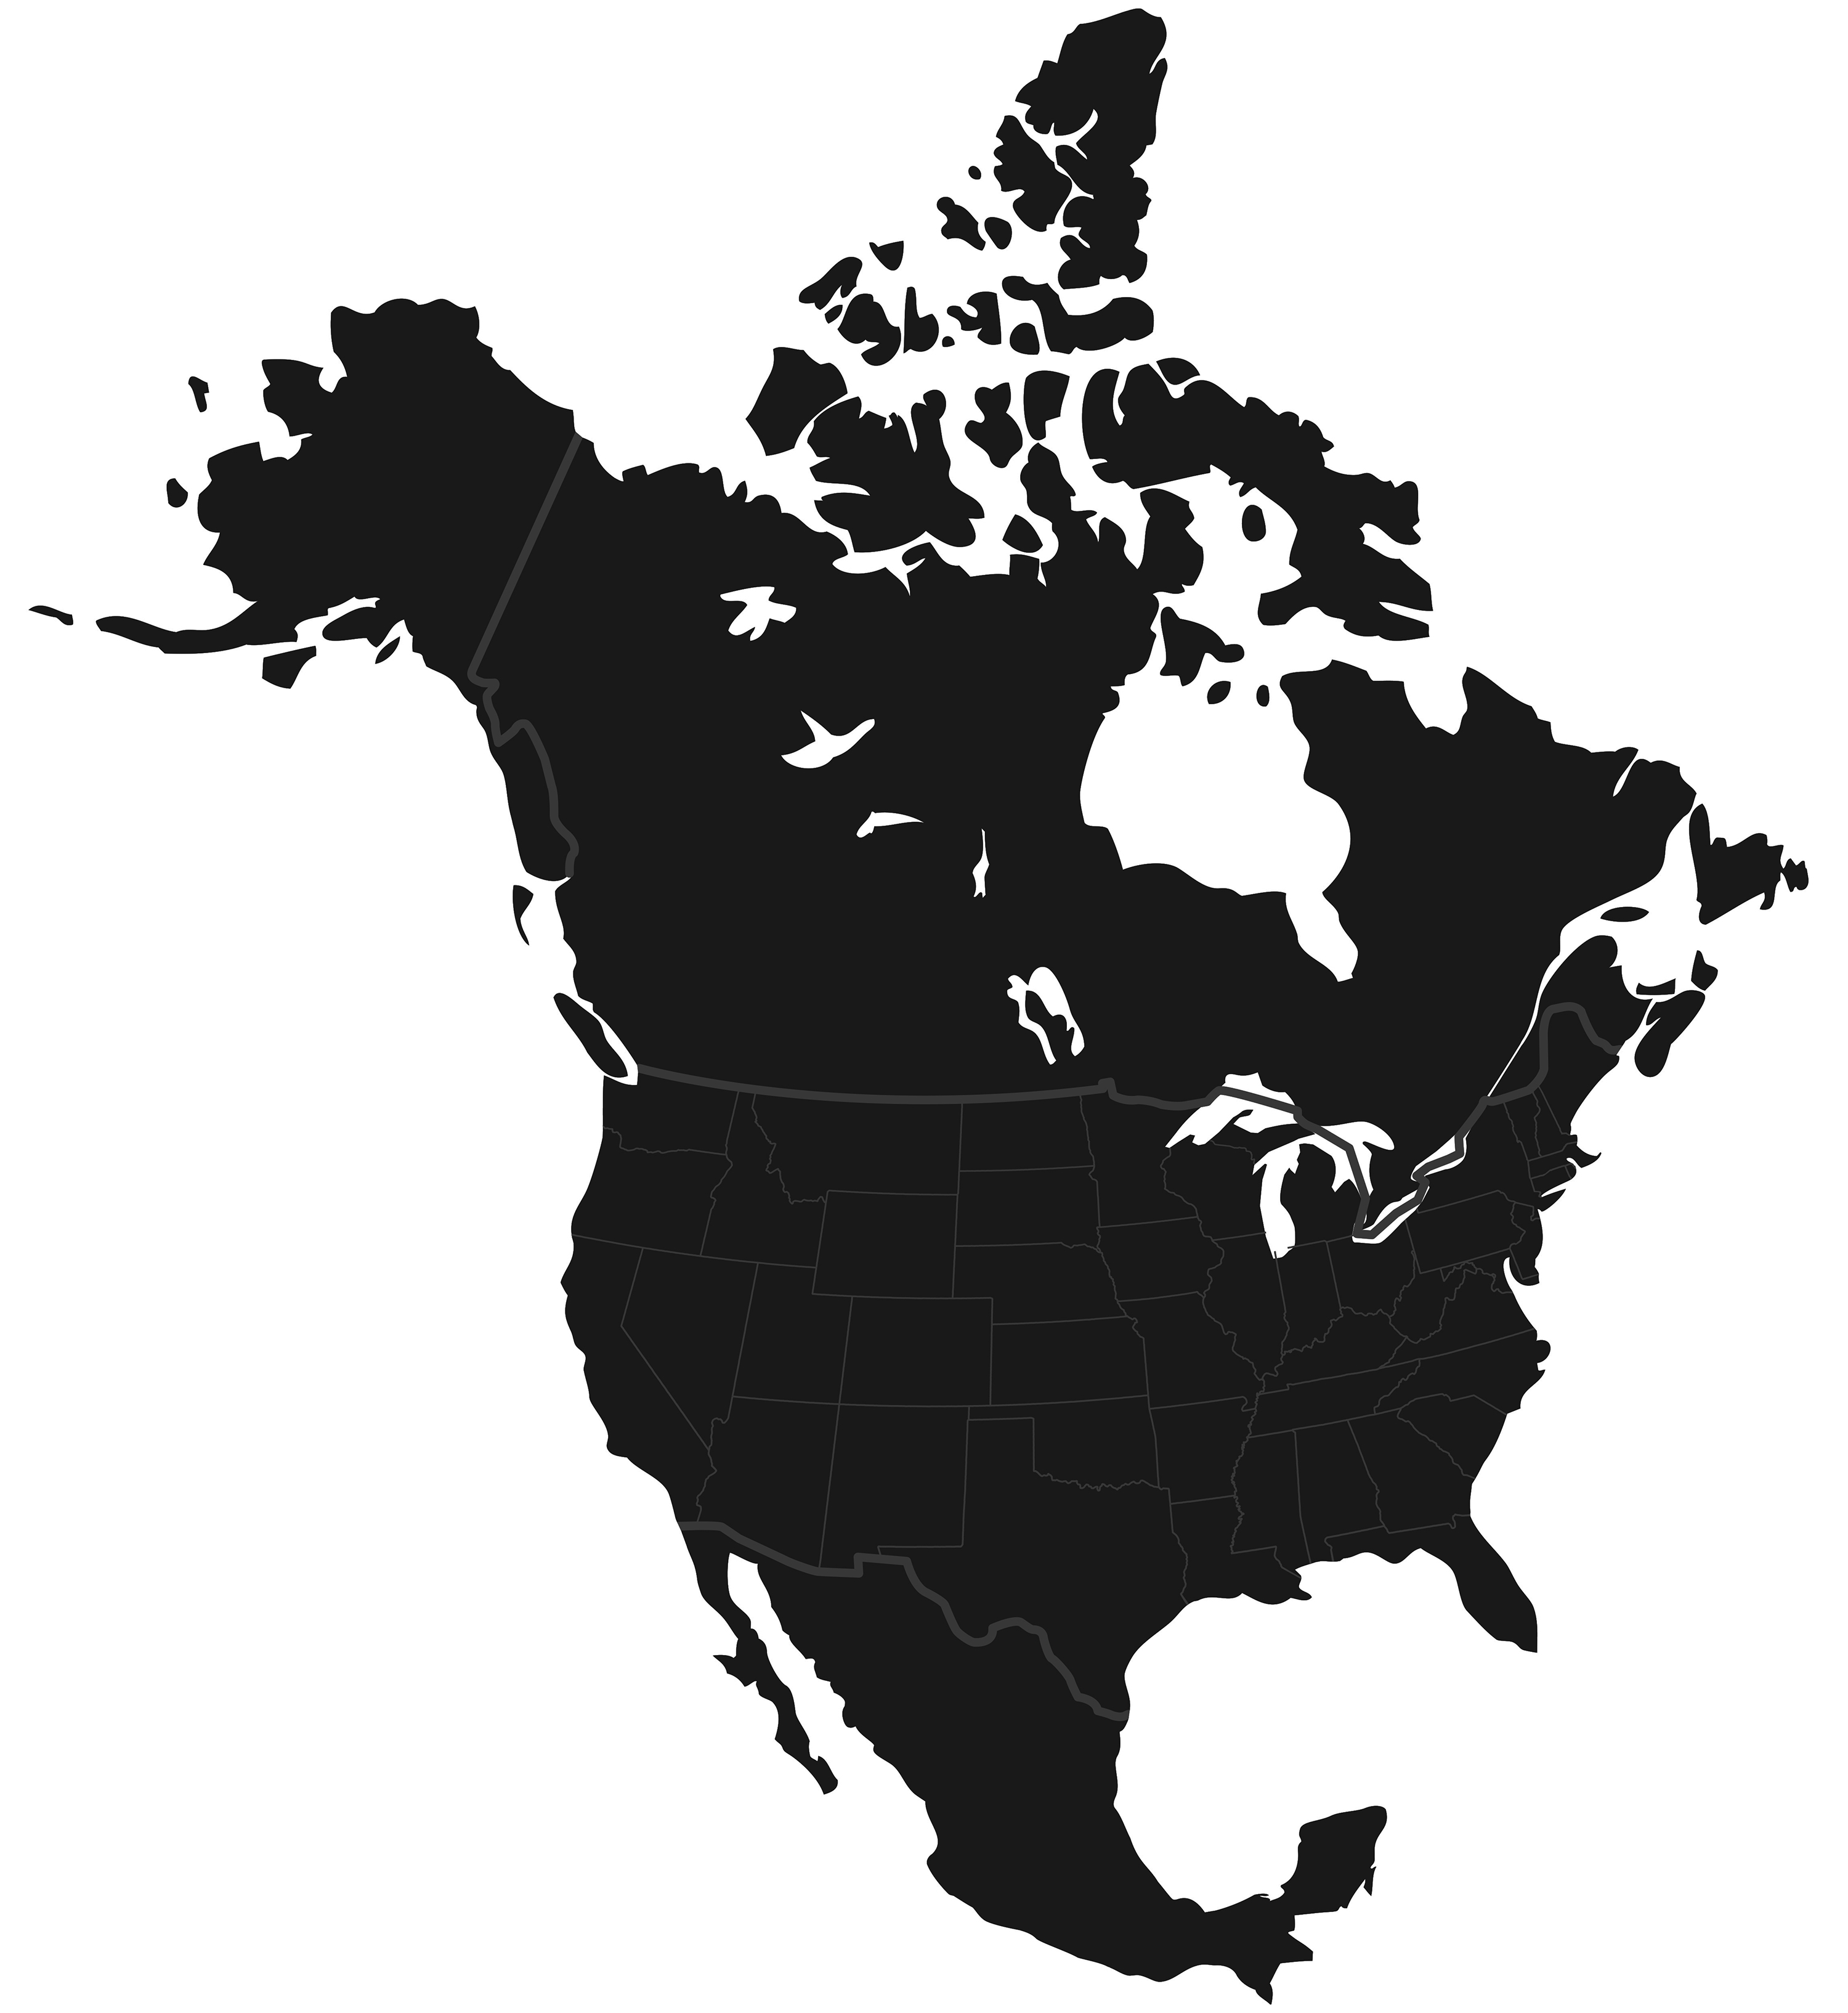 Regional Sales Manager Map - North America